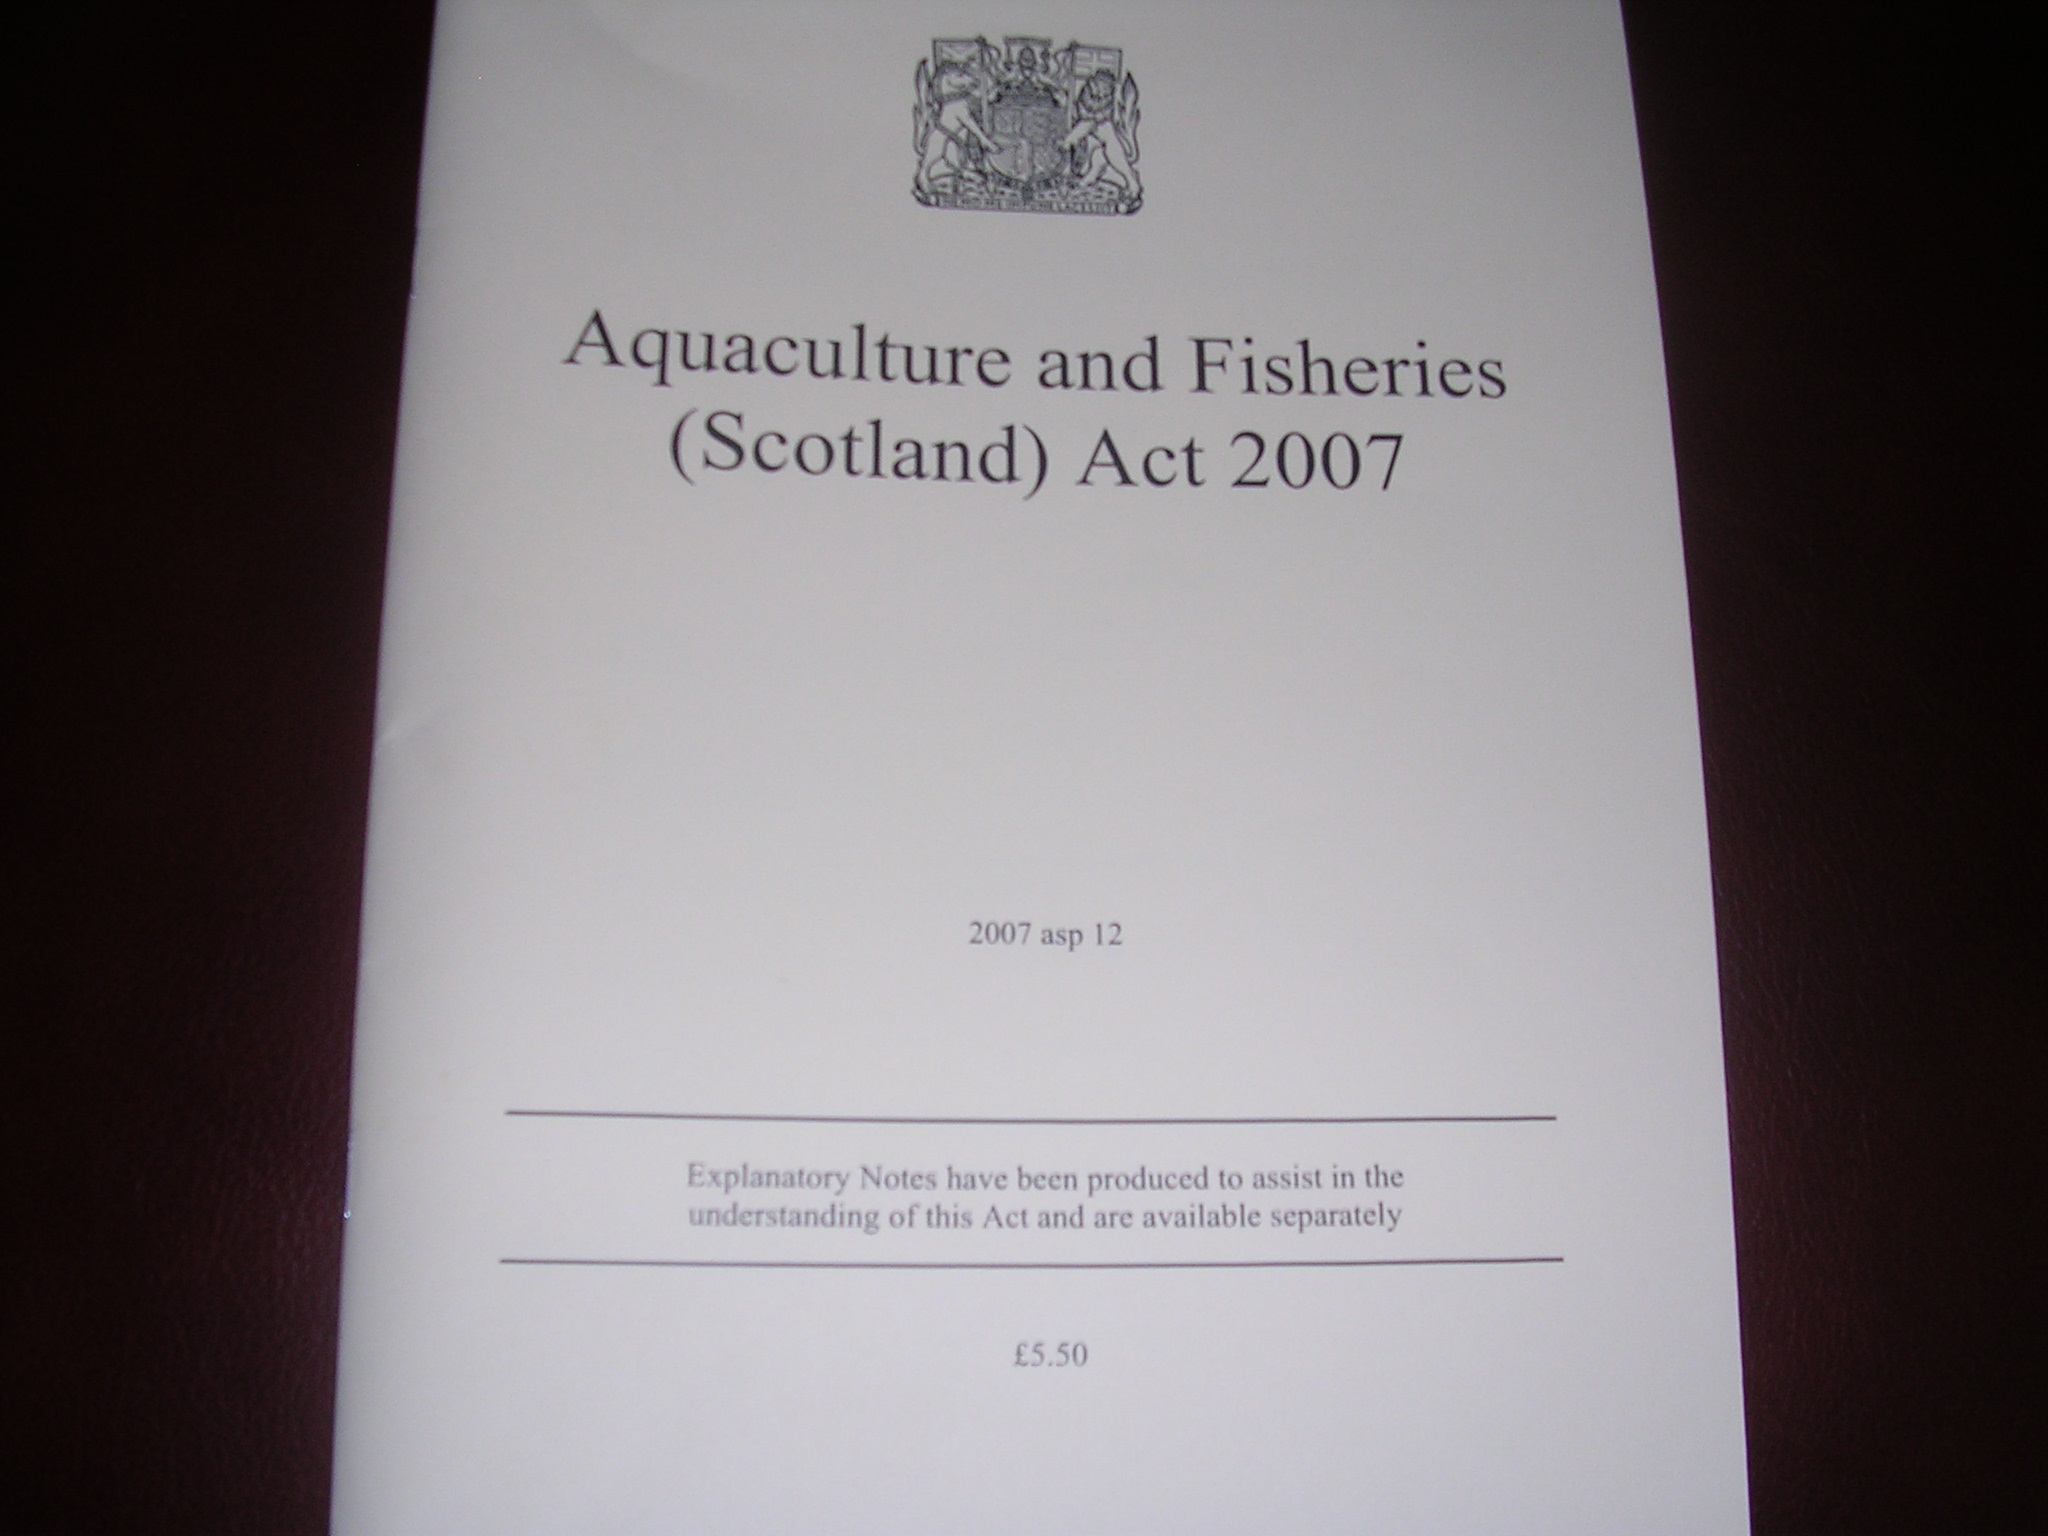 After a bill has passed through all legislative stages, it becomes an Act of the Scottish Parliament.